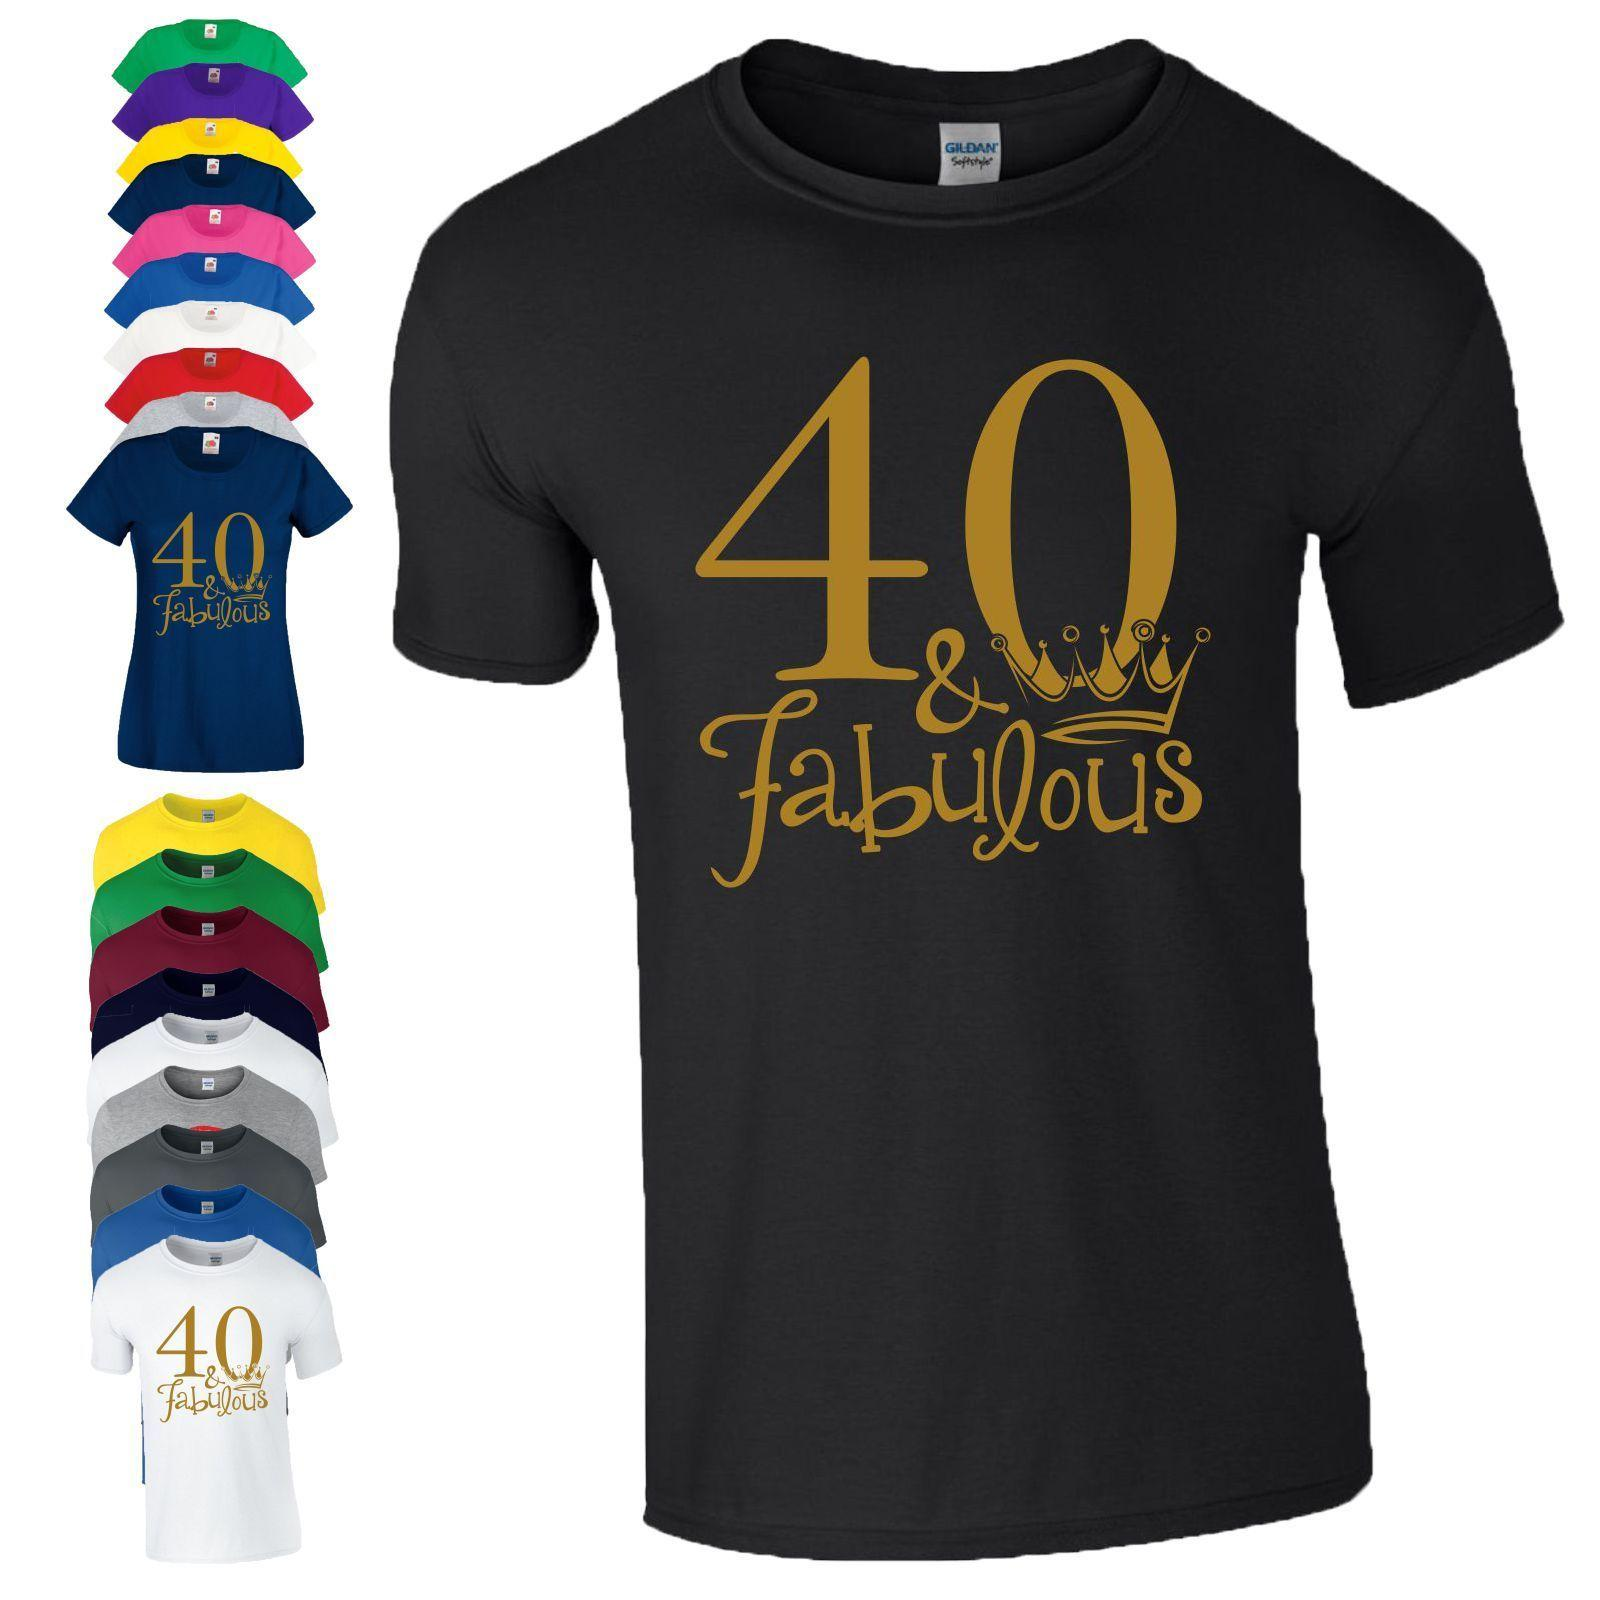 40th Birthday Gift T Shirt Made In 1978 King Queen 40 Fabulous Crown Mens LadiesFunny Unisex Casual Tee Tshirt Designs Design Template From